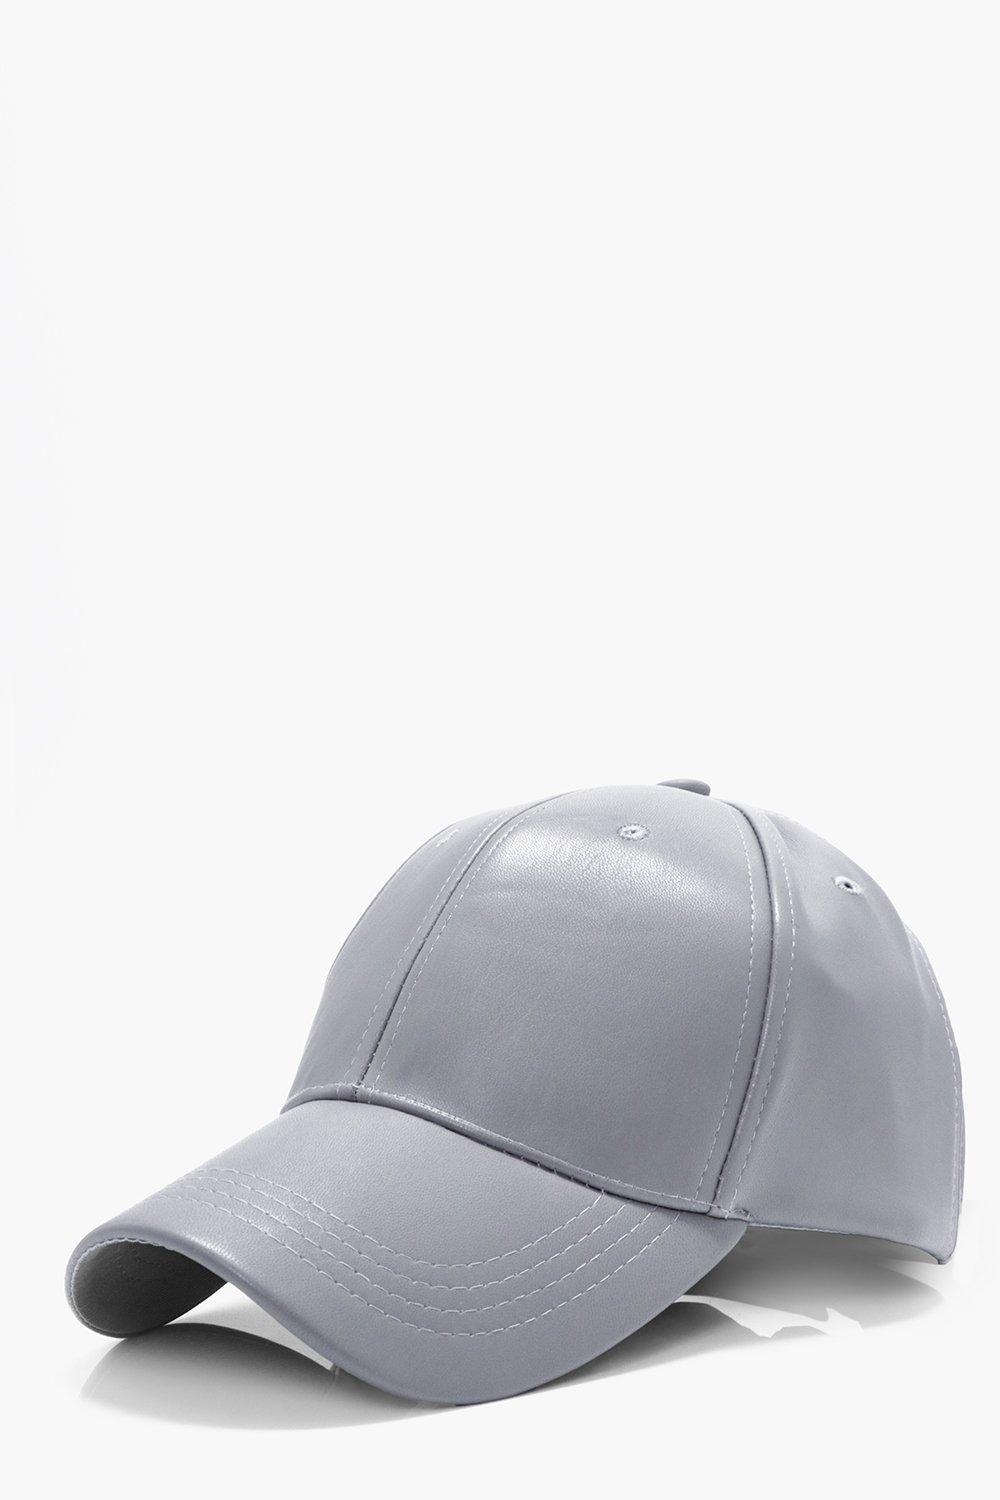 PU Cap - grey - Plain PU Cap - grey